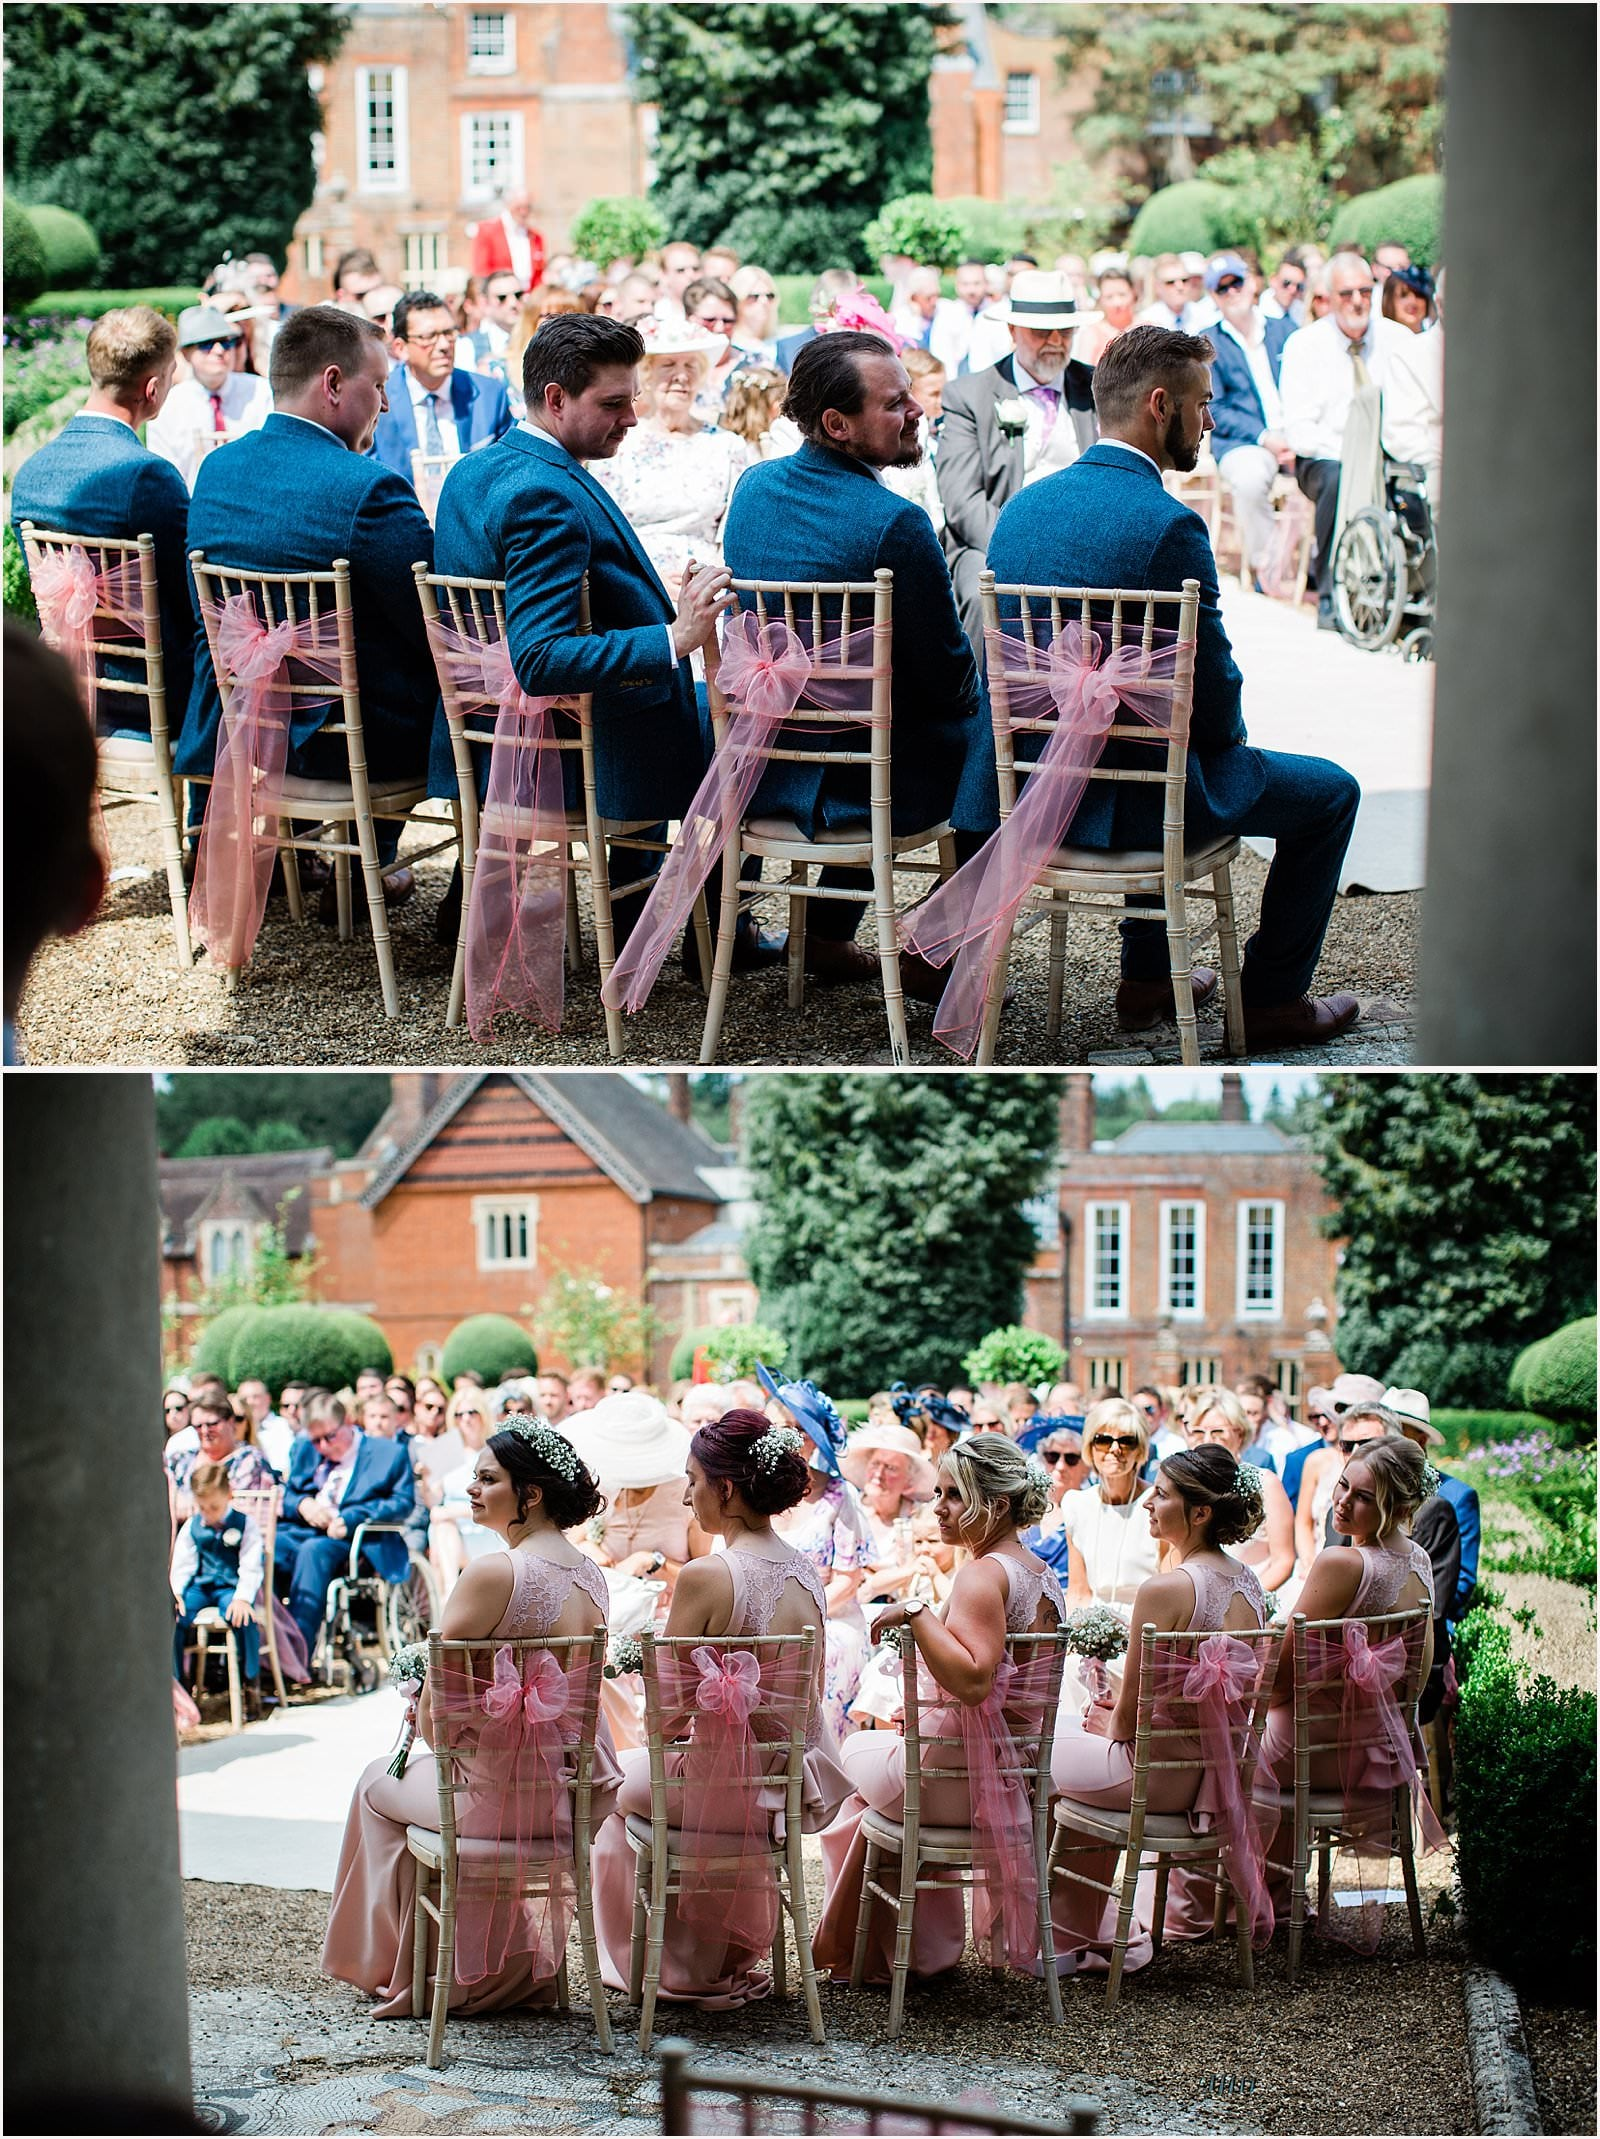 Wotton House Wedding - Justine + Rob's stunning wedding 26